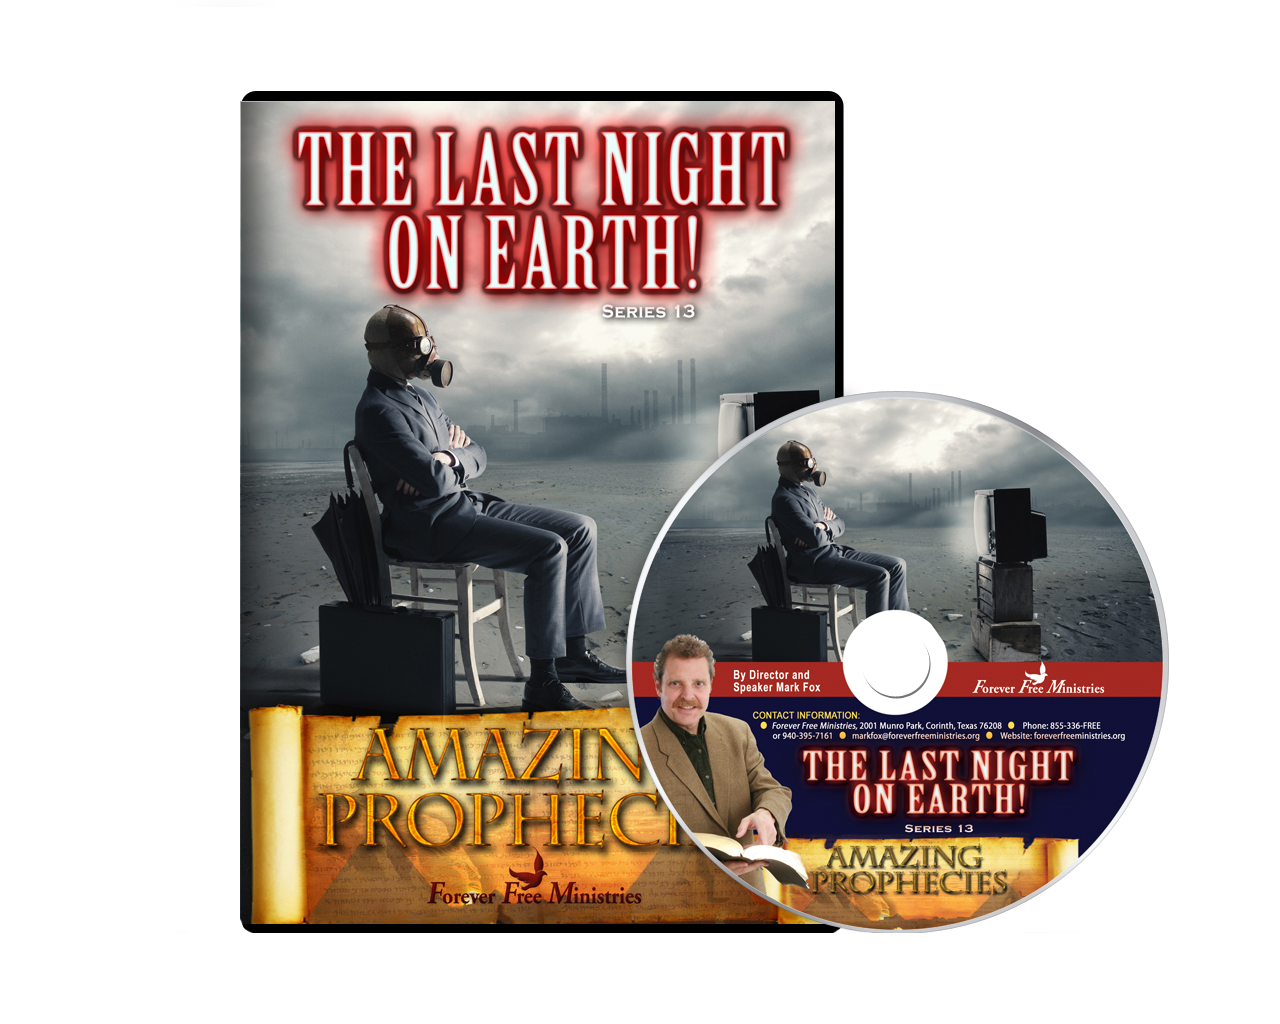 Series 13 The Last Night on Earth!